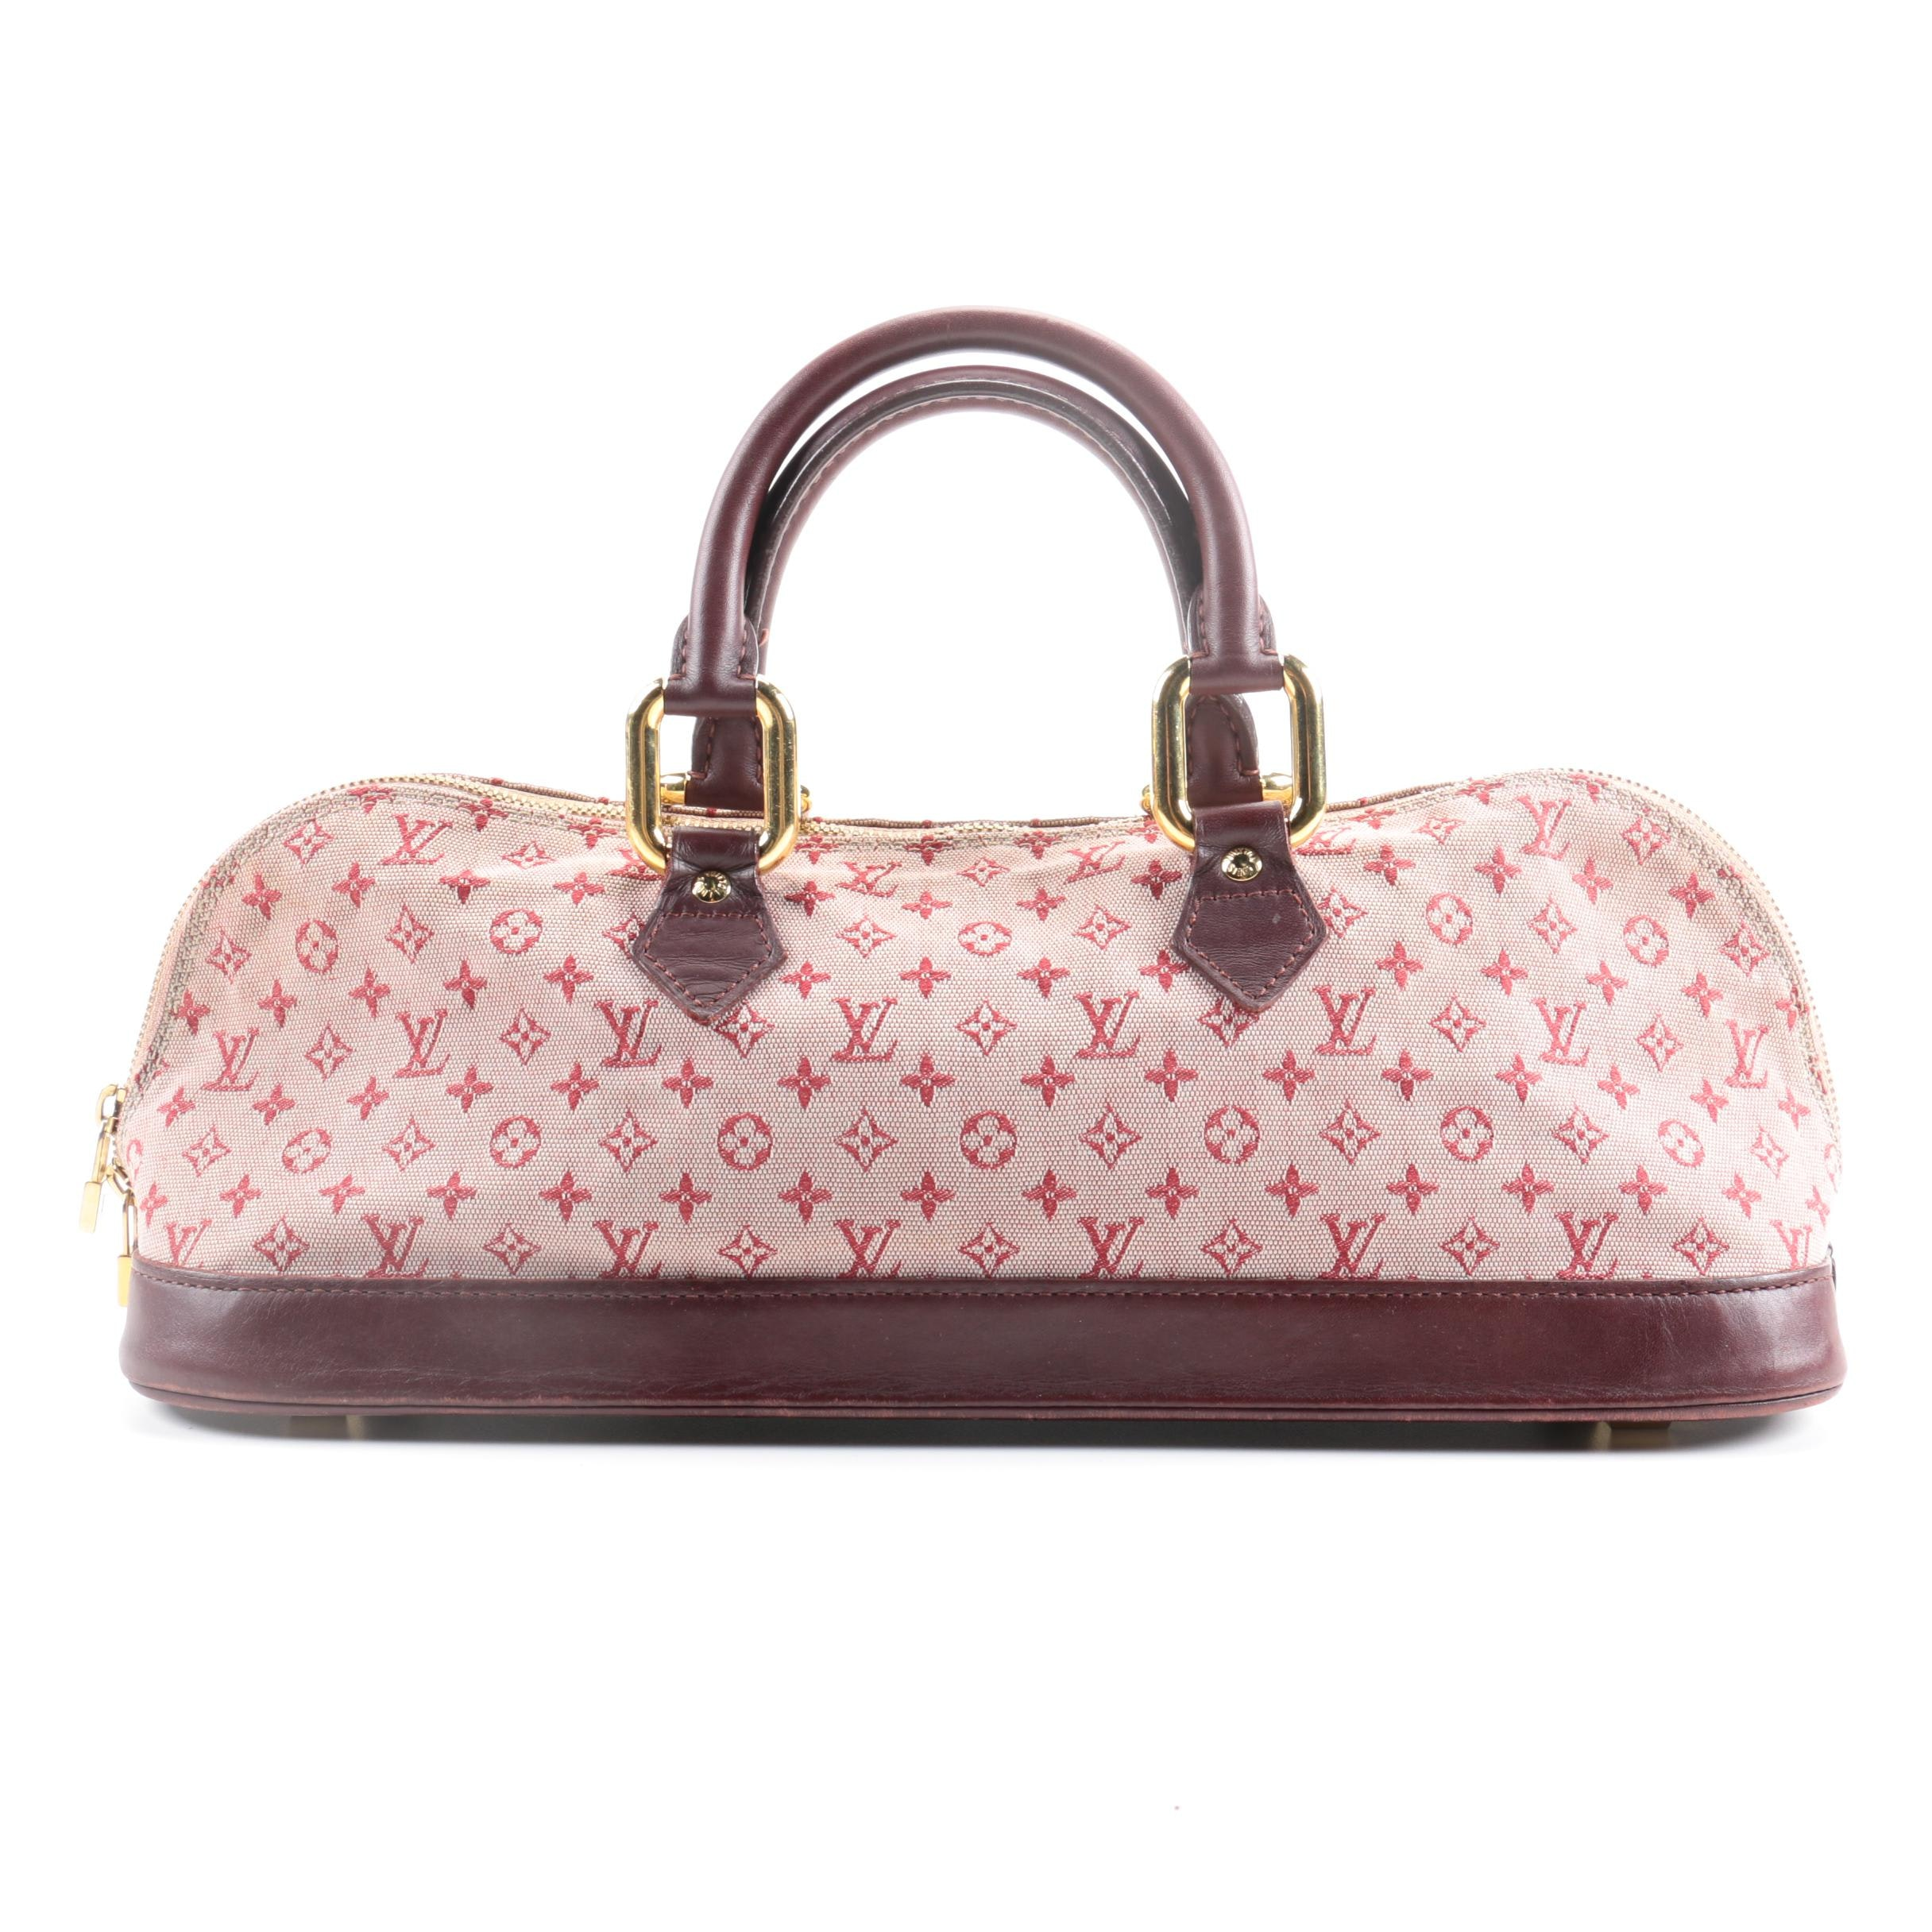 Louis Vuitton Mini Monogram Alma Long Cerise Cherry Handbag